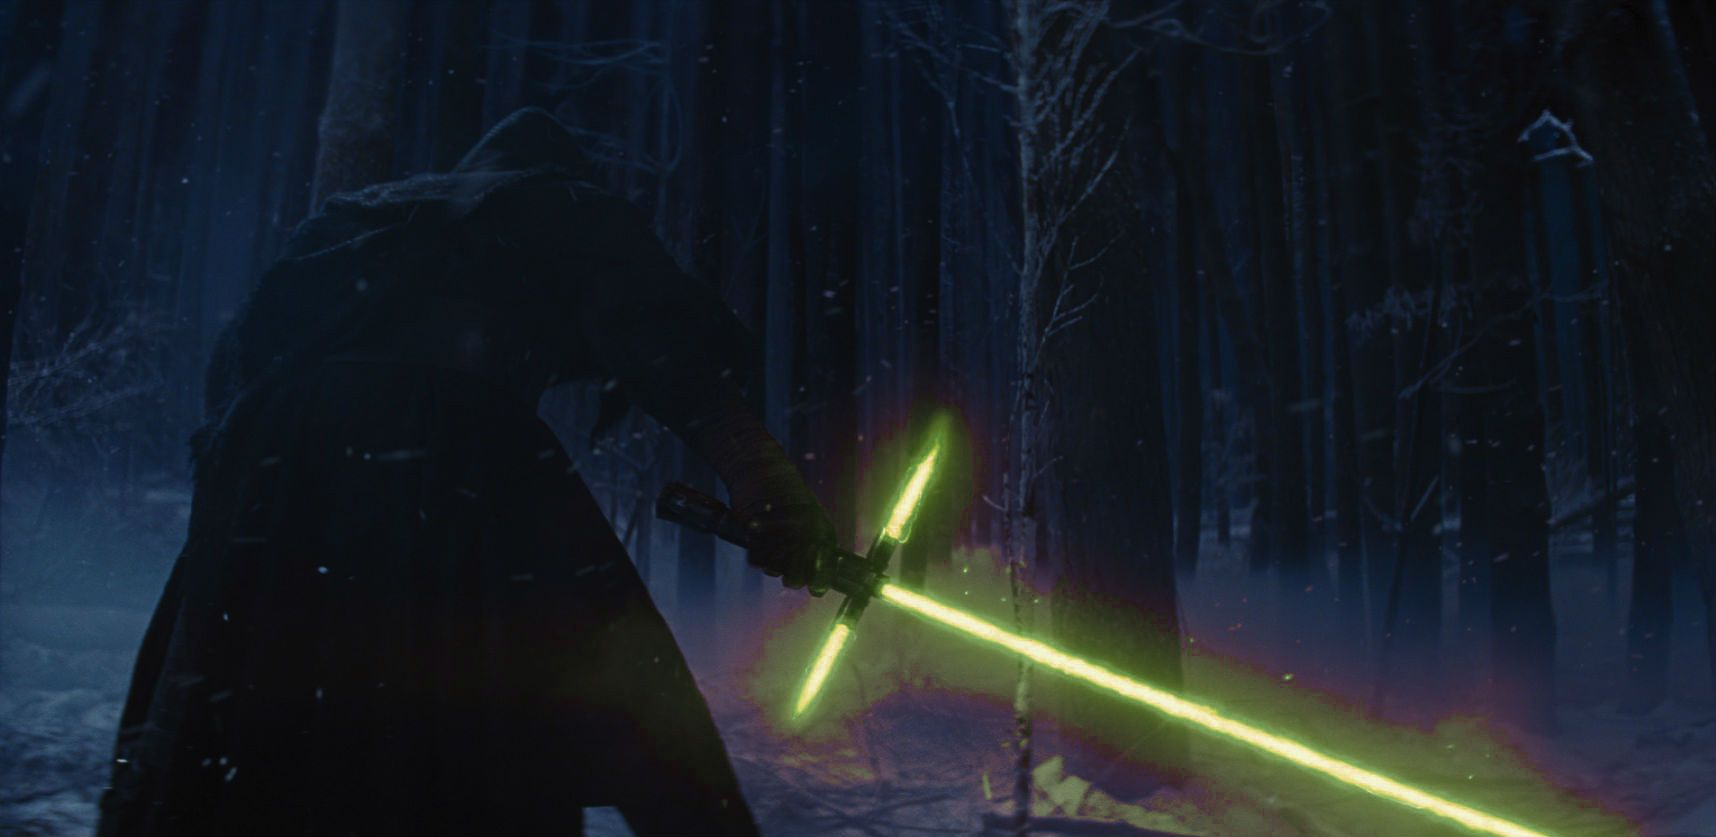 Kylo Ren podría pasarse al lado luminoso en 'Star Wars: Episodio IX' - Star Wars 9